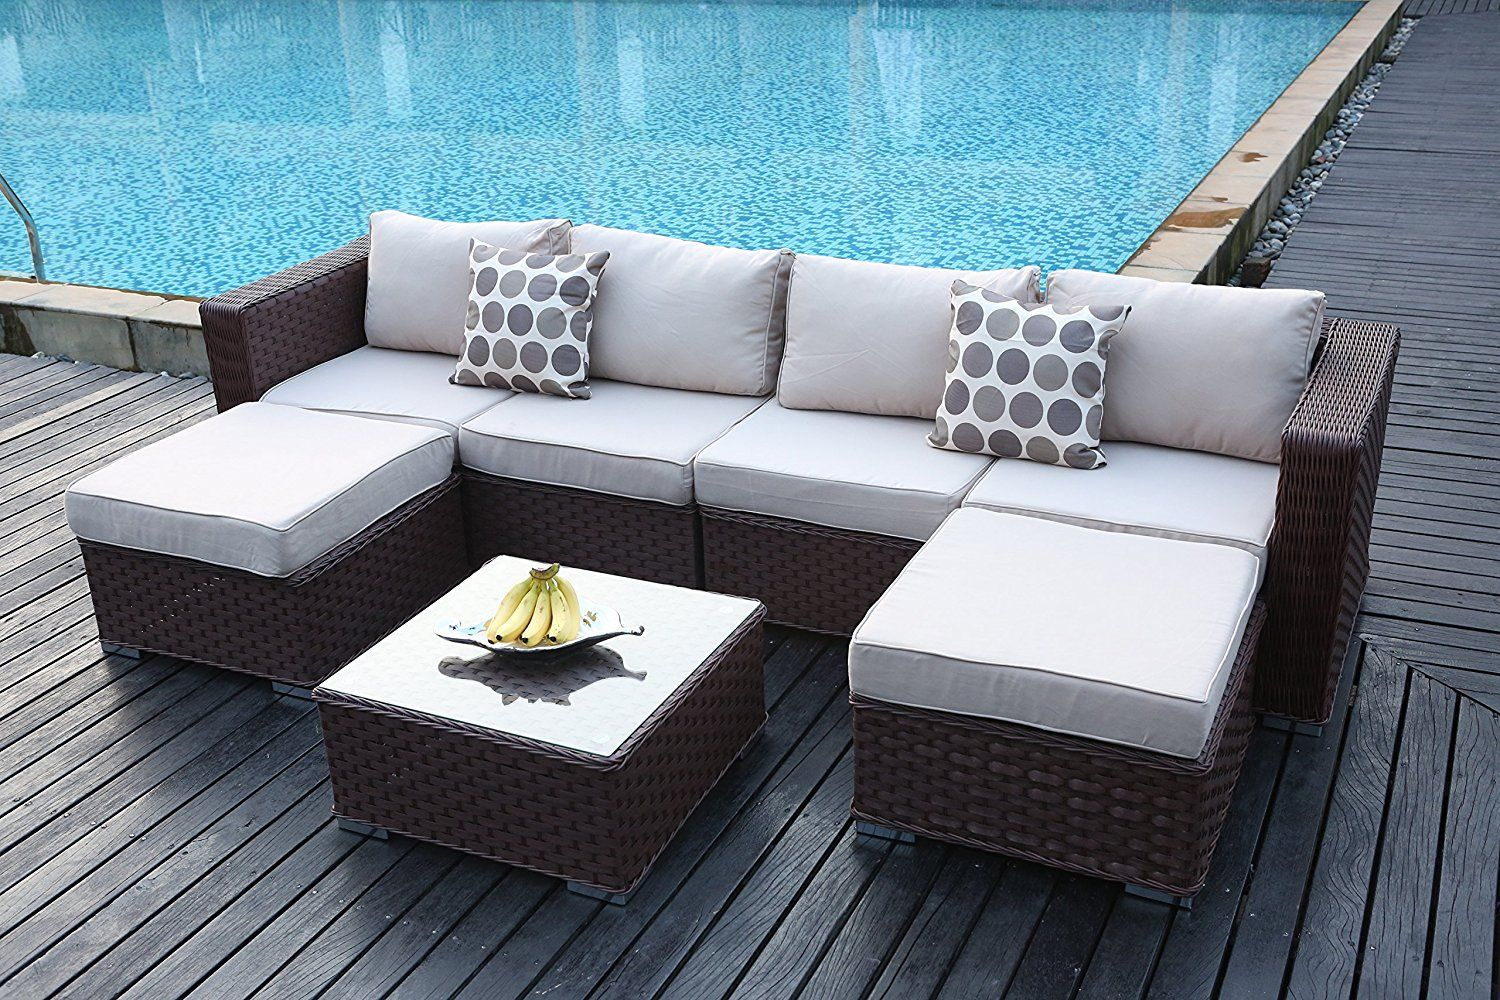 Yakoe 50131 Papaver 6 Seater Garden Furniture Patio Conservatory Rattan Corner Sofa Set With Coffee Table A Corner Sofa Set Rattan Corner Sofa Outdoor Sofa Bed